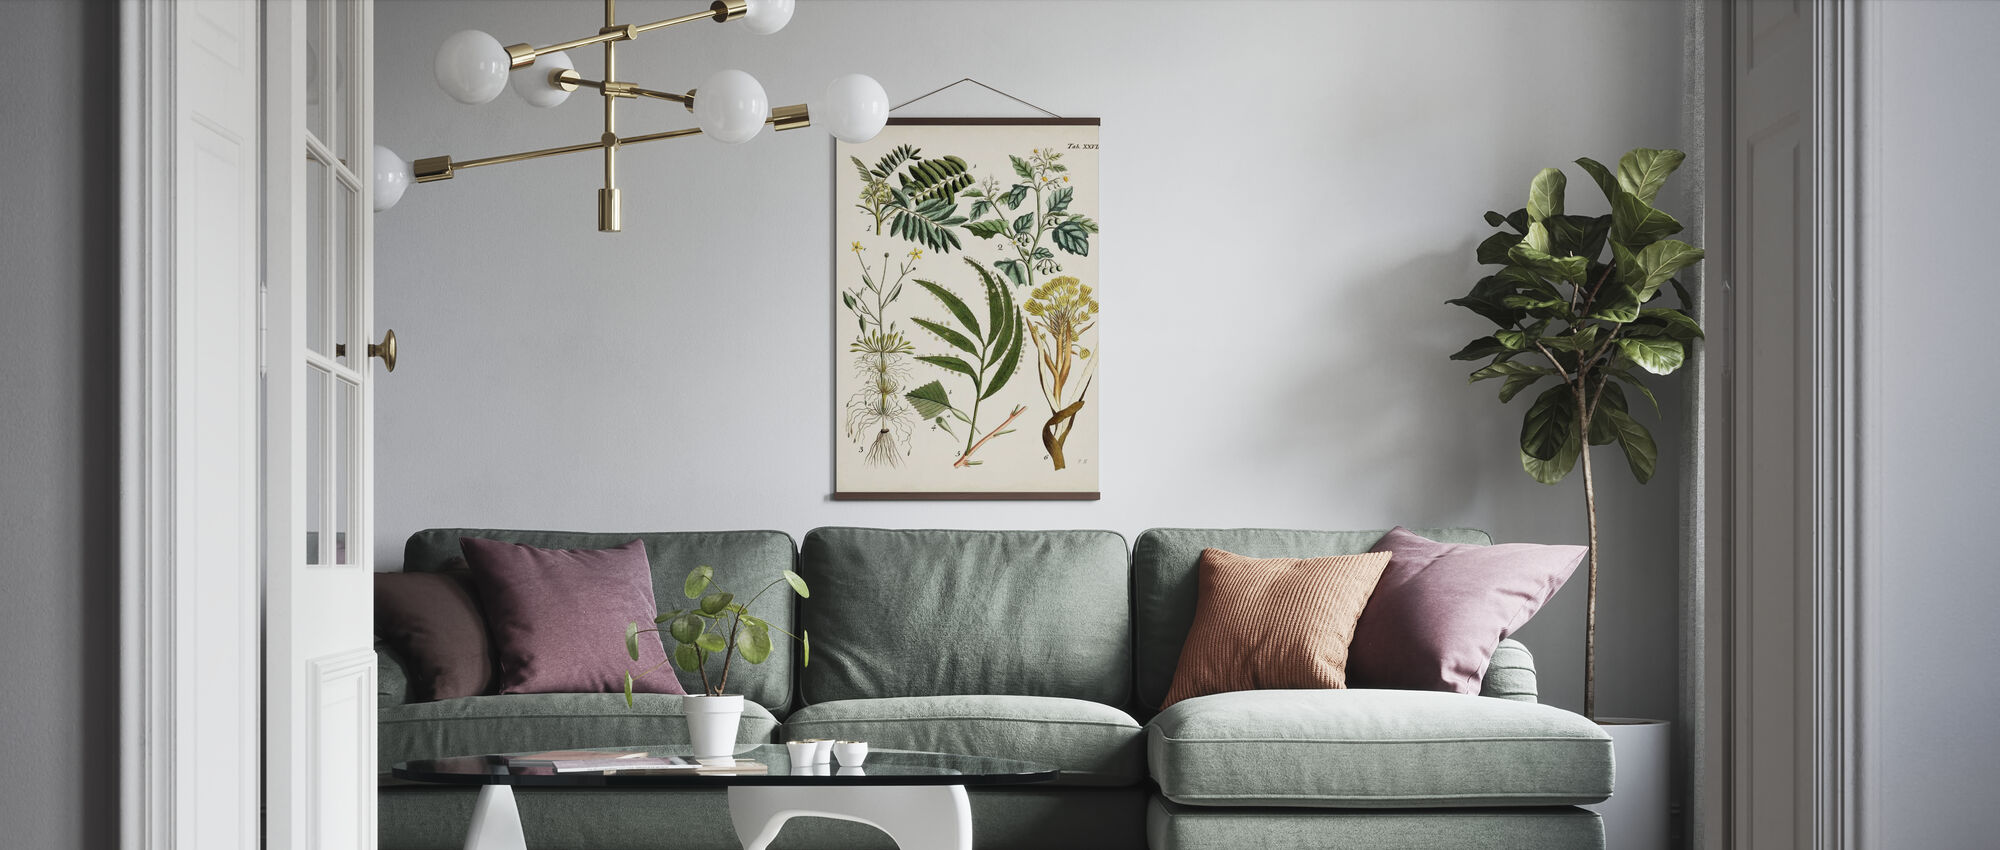 Fanciful Ferns - Poster - Living Room